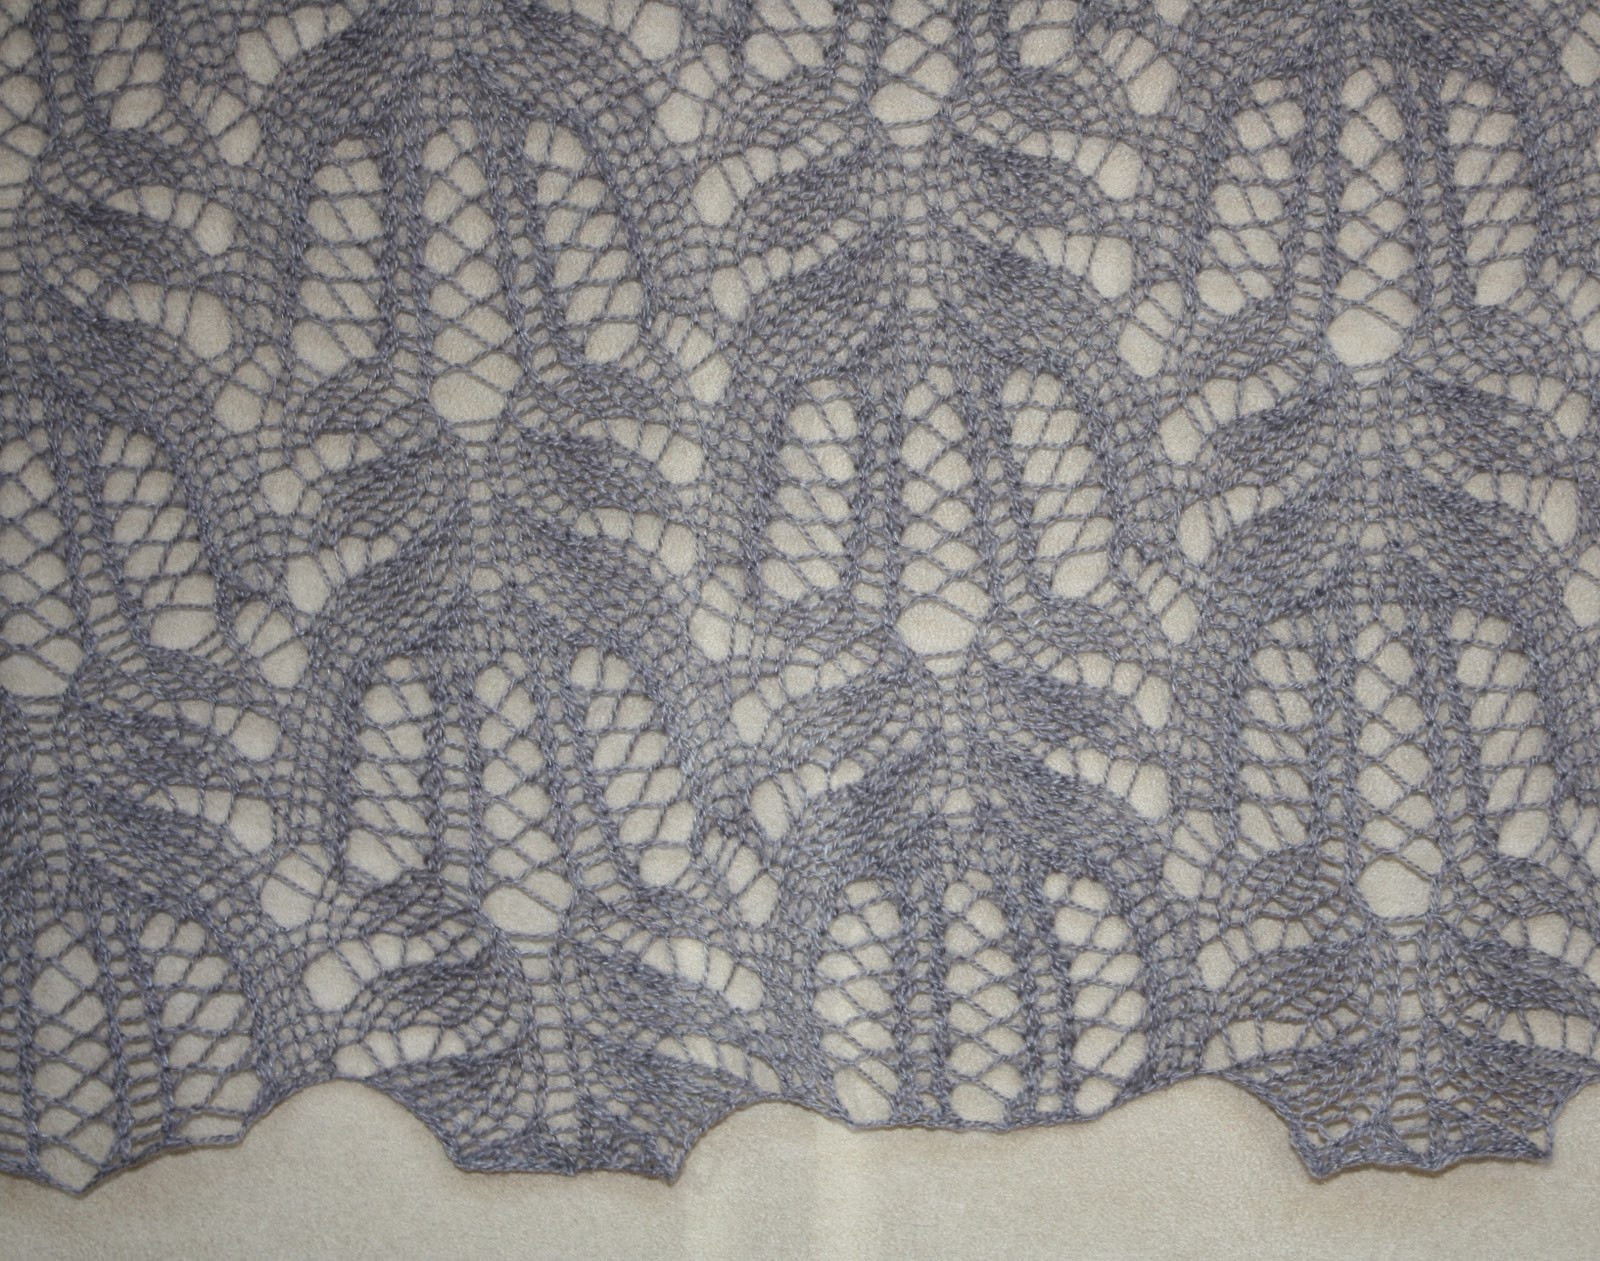 Lace Pattern Awesome All Knitted Lace Frost Flowers Lace Pattern Of Delightful 40 Images Lace Pattern